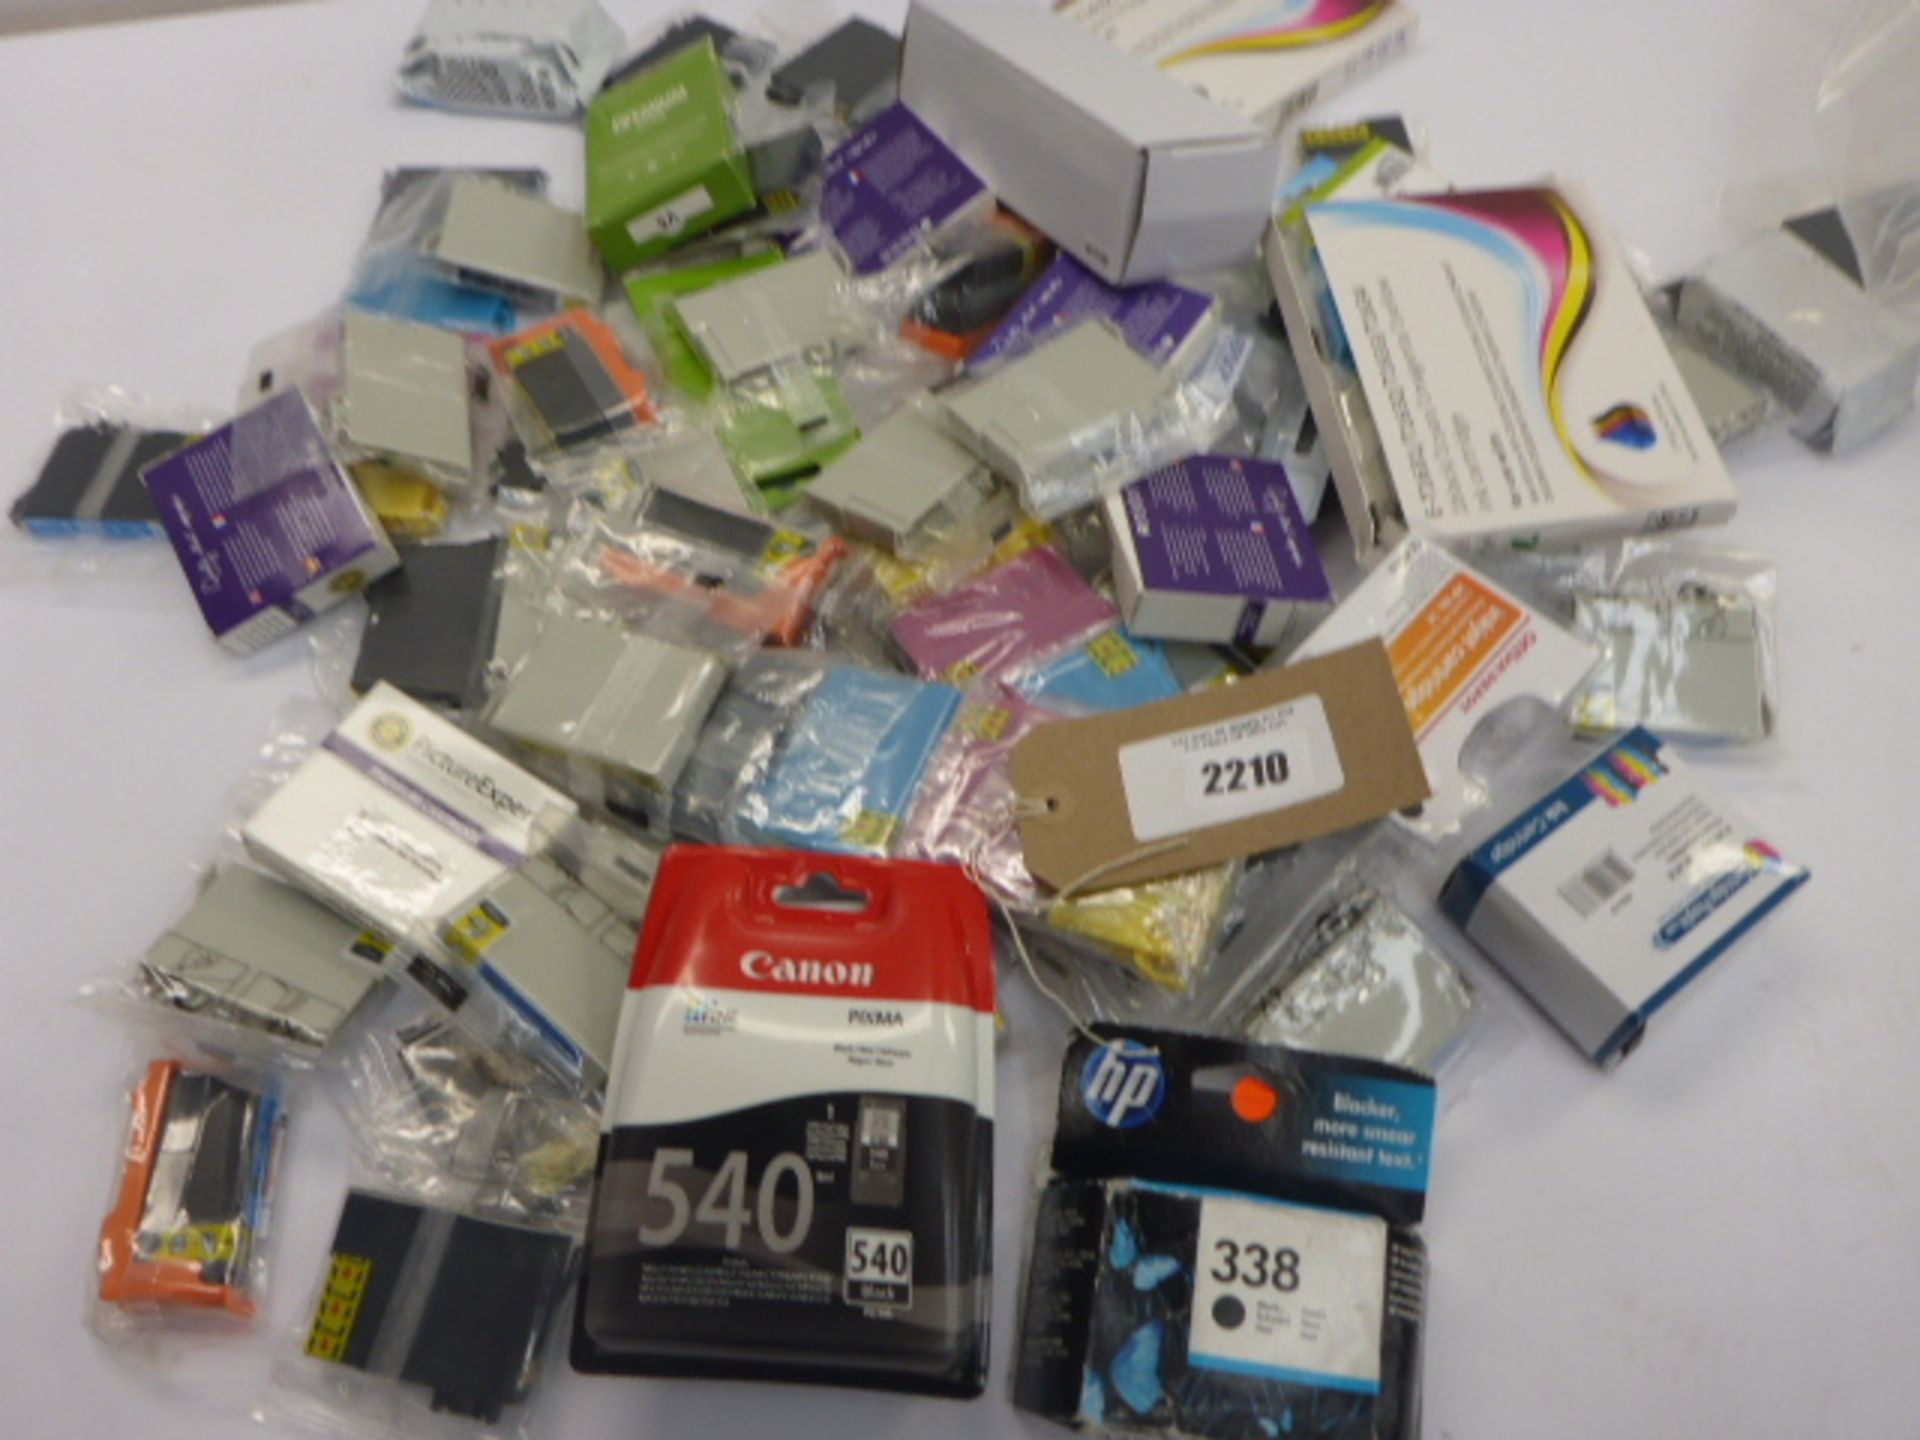 Lotto 2210 - Bag containing quantity of various printer ink cartridges